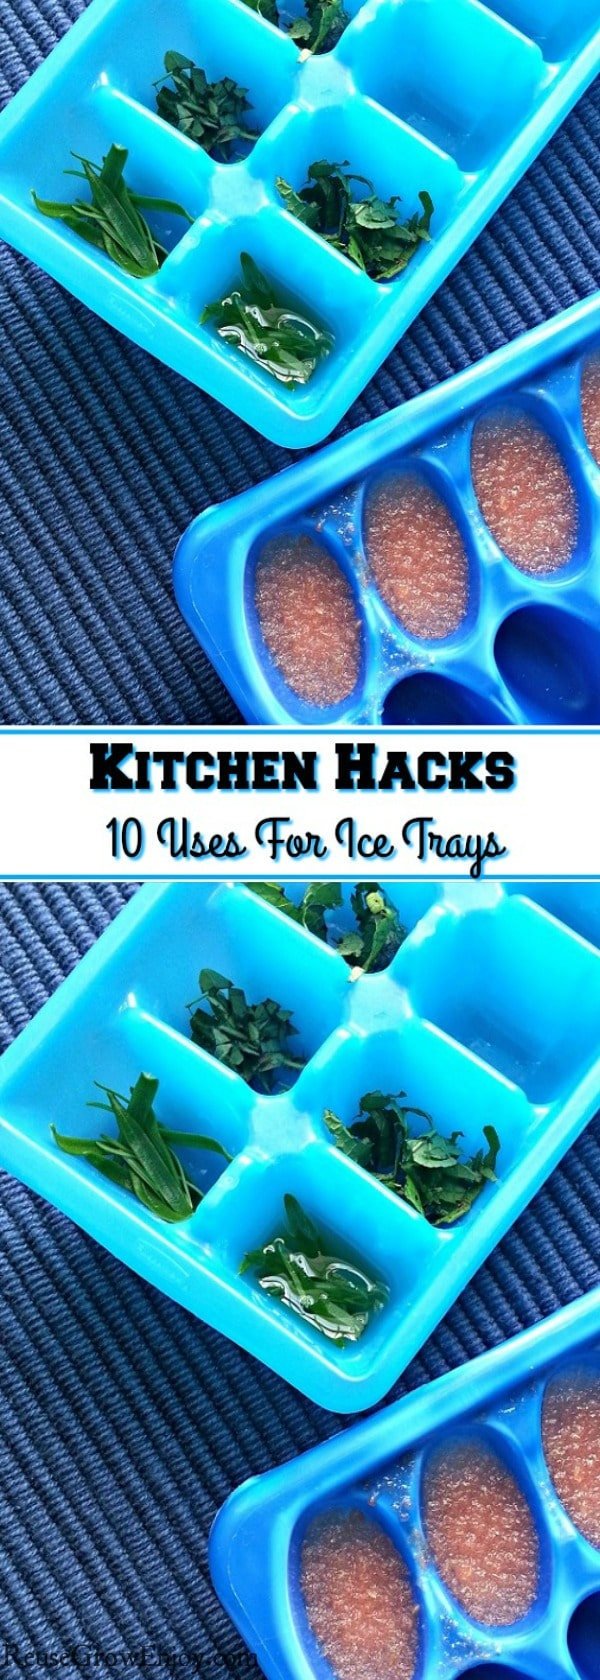 Did you know there are tons of different ways to reuse ice trays other then just ice? I will share some kitchen hacks with you for 10 uses for ice trays!